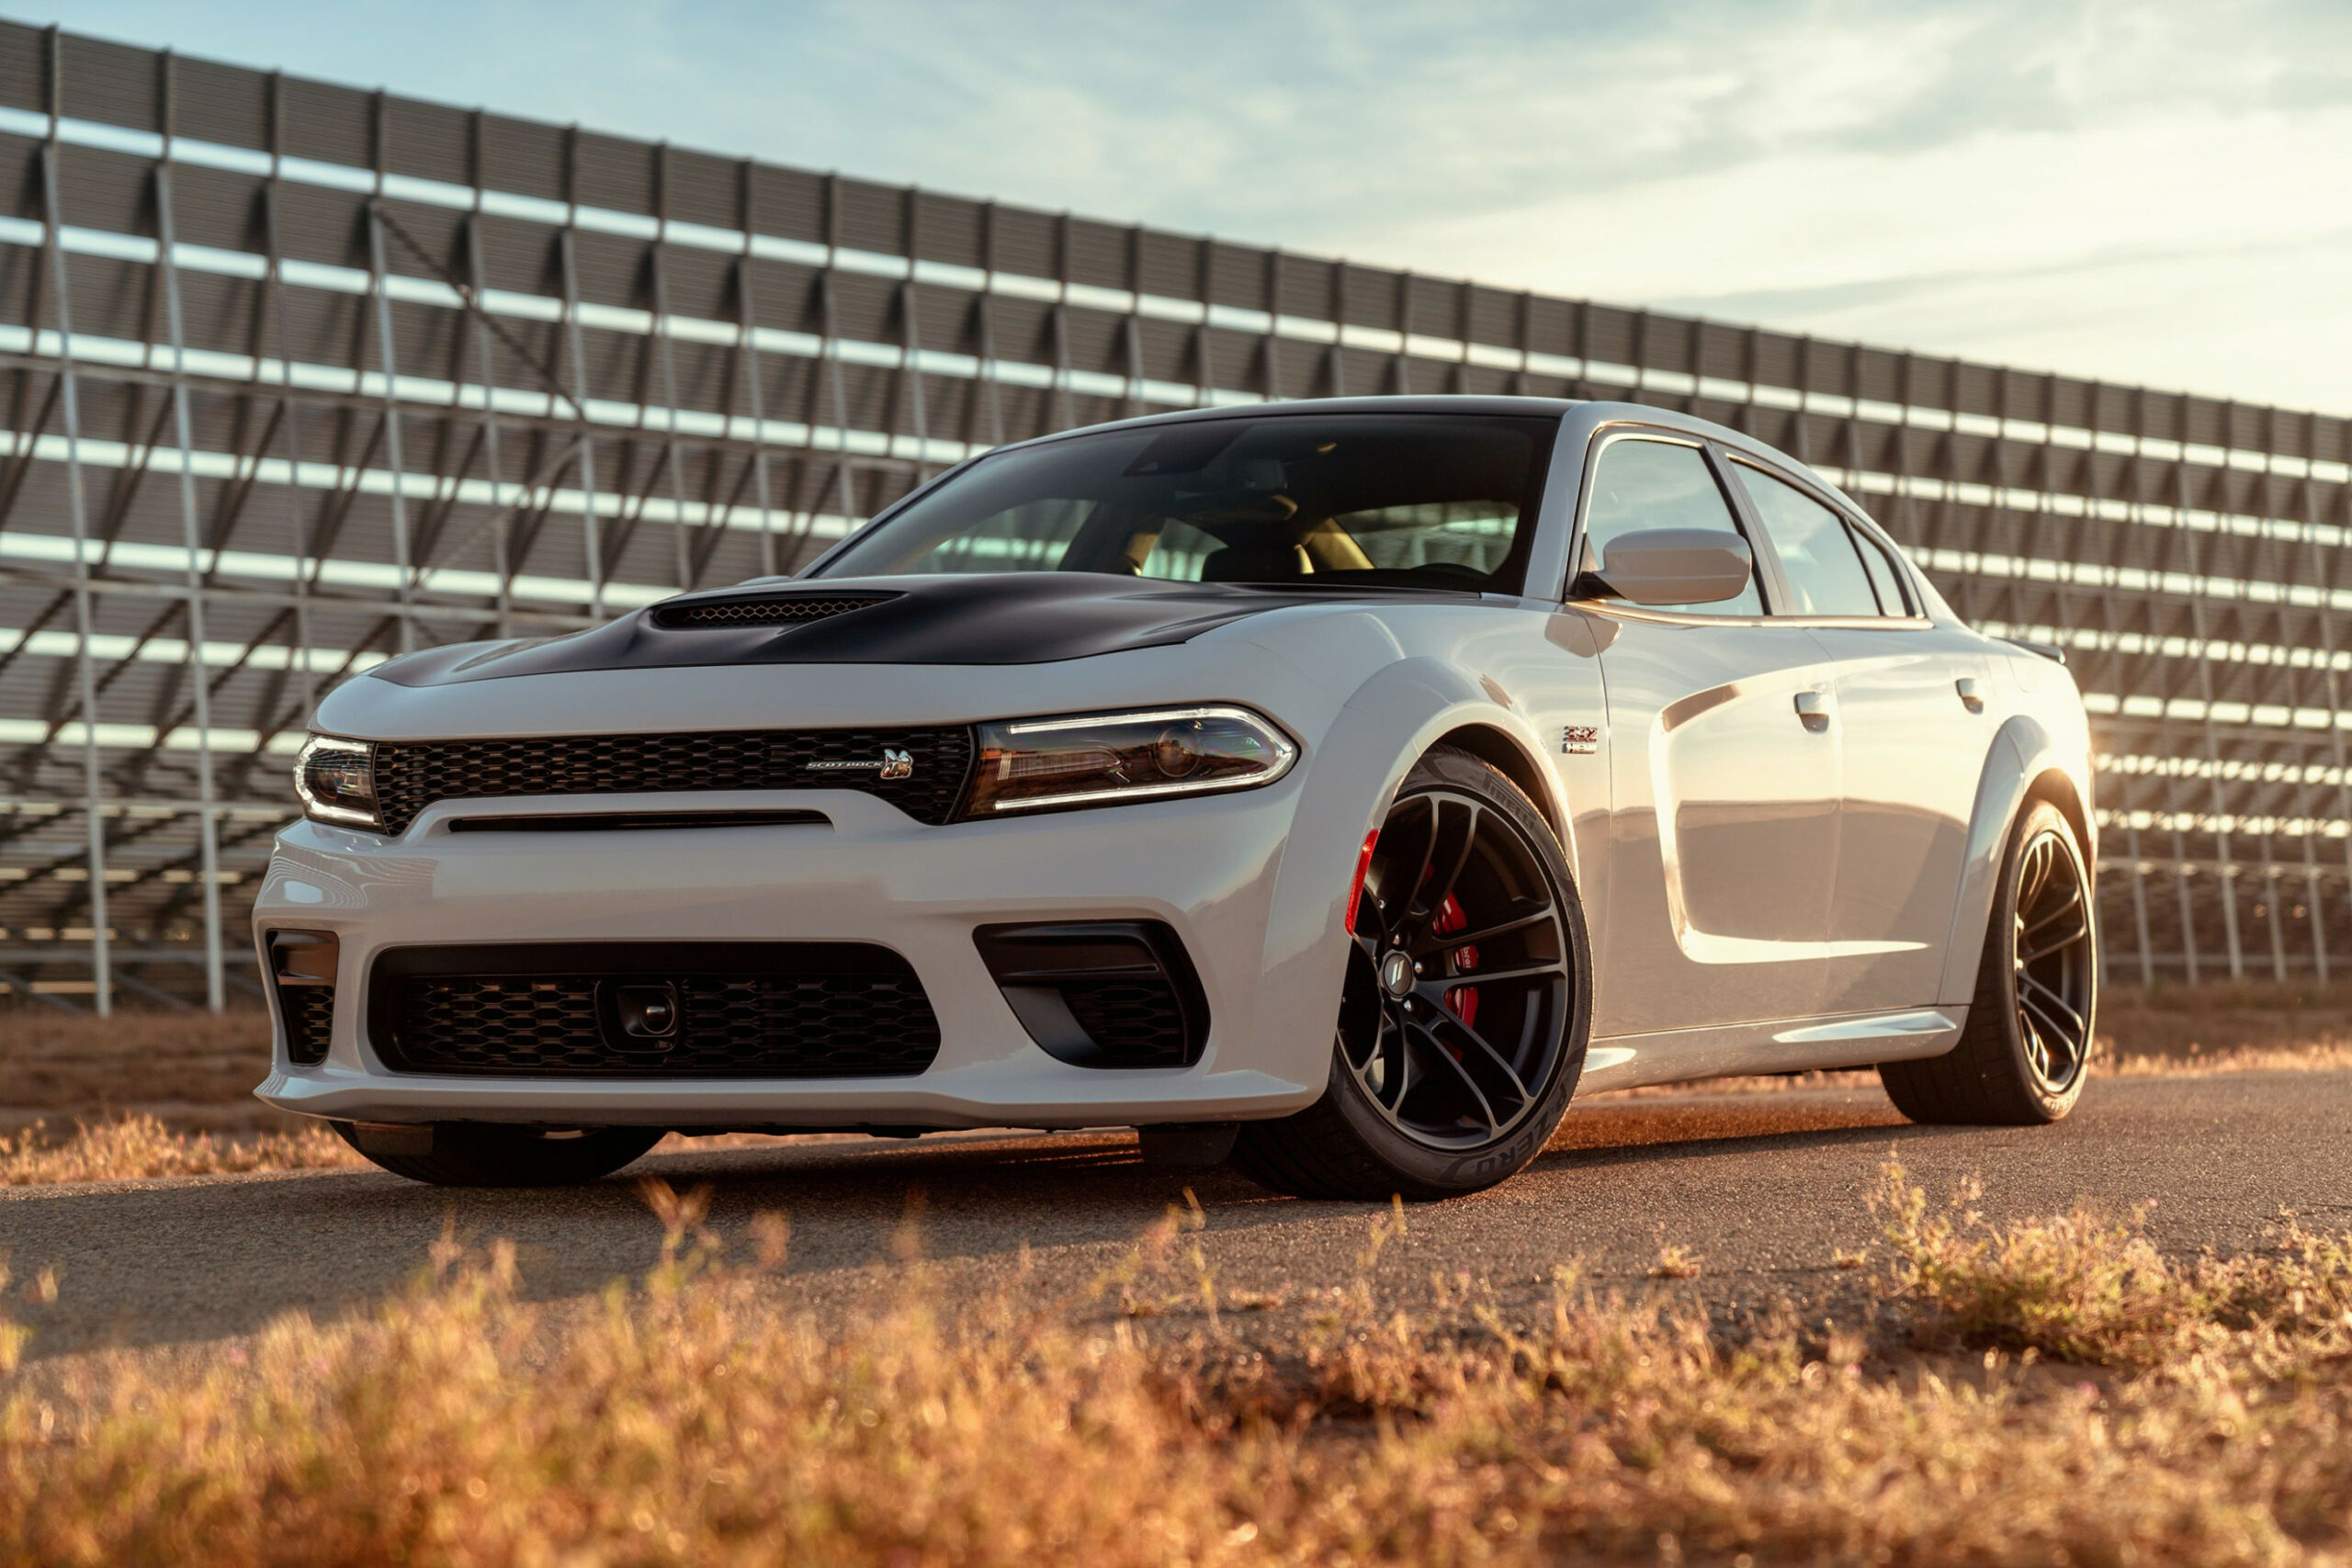 10 Dodge Charger Review, Pricing, and Specs - 2020 dodge charger sxt